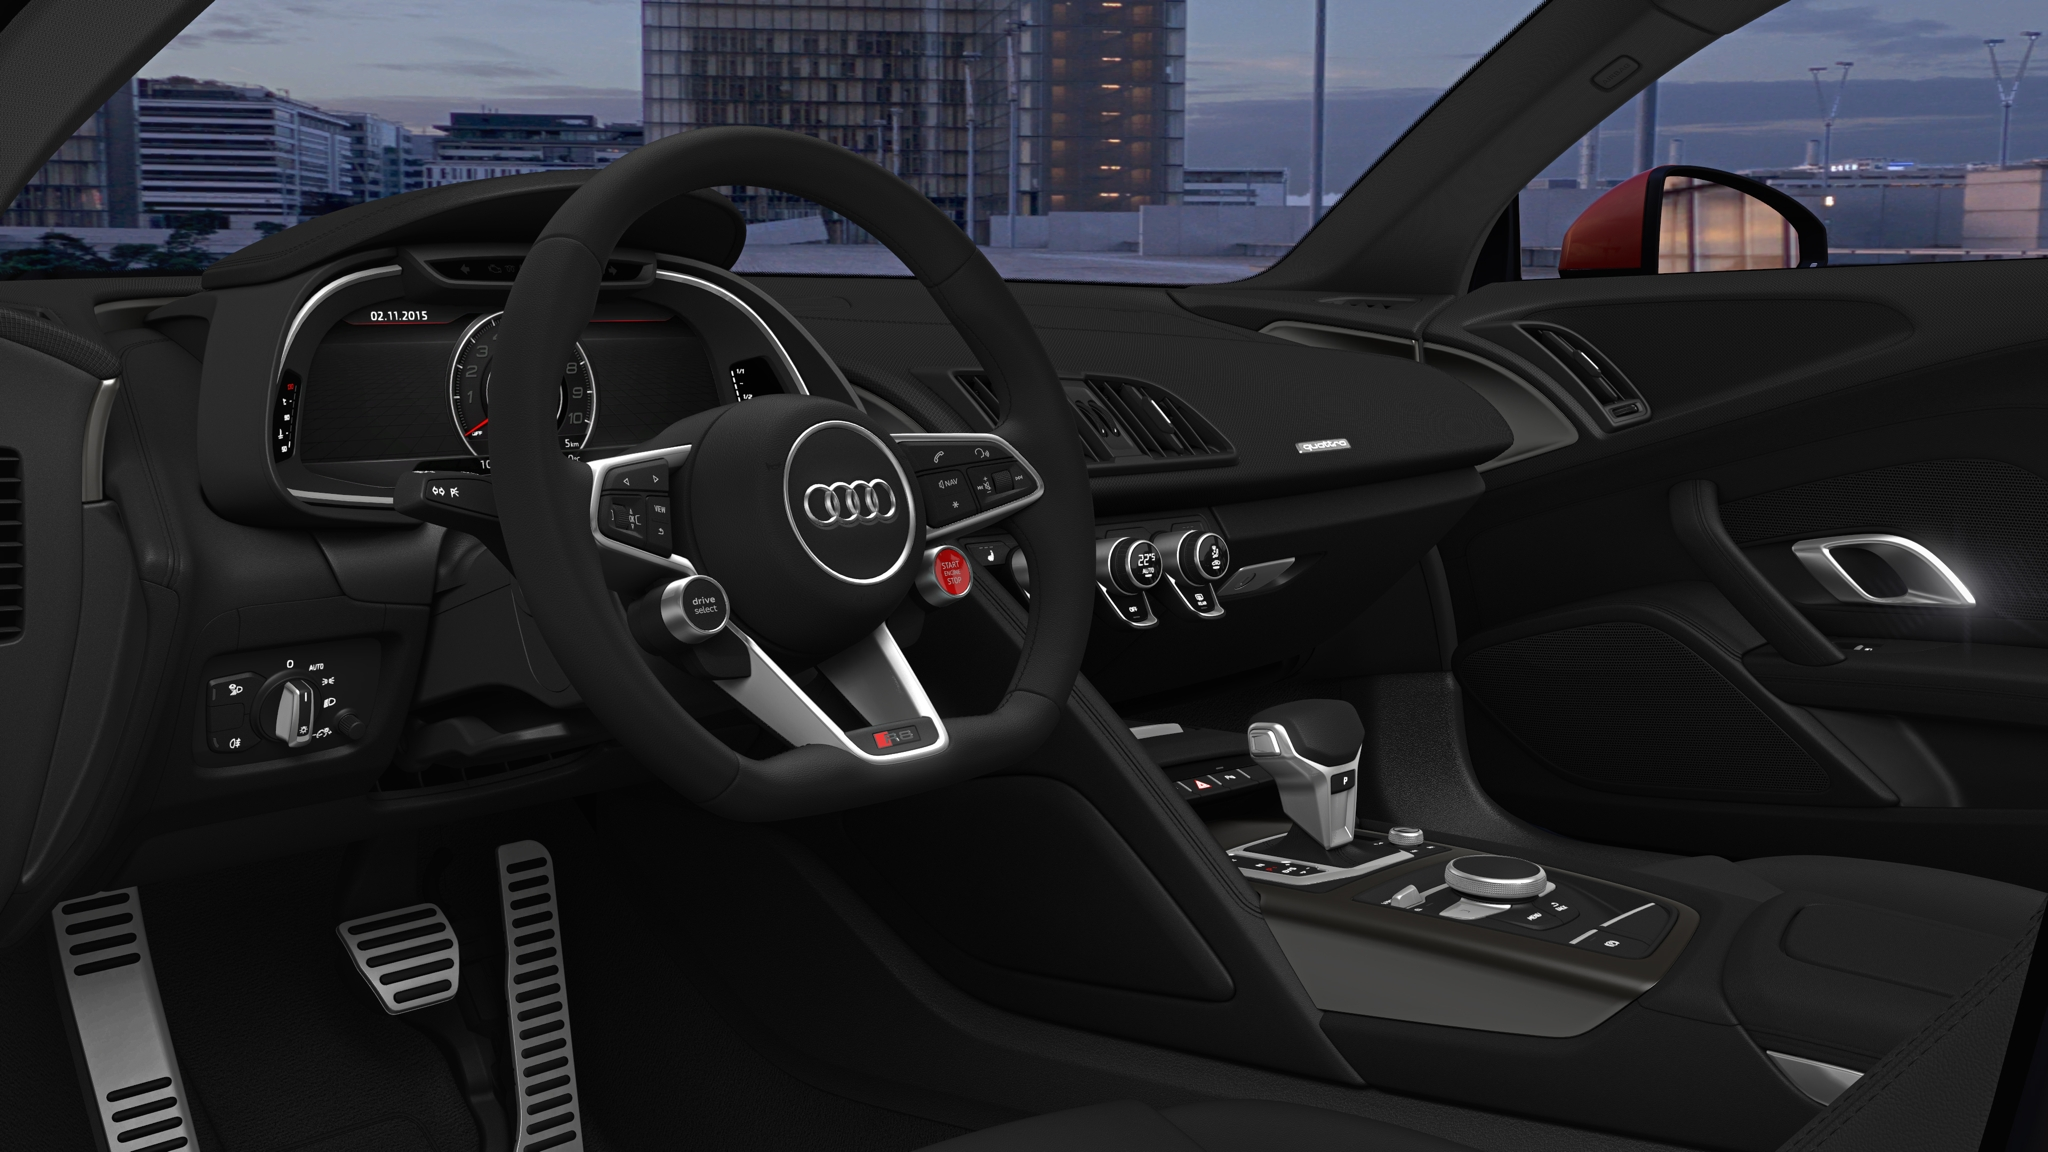 Audi is outfitting its dealers with an impressive VR experience